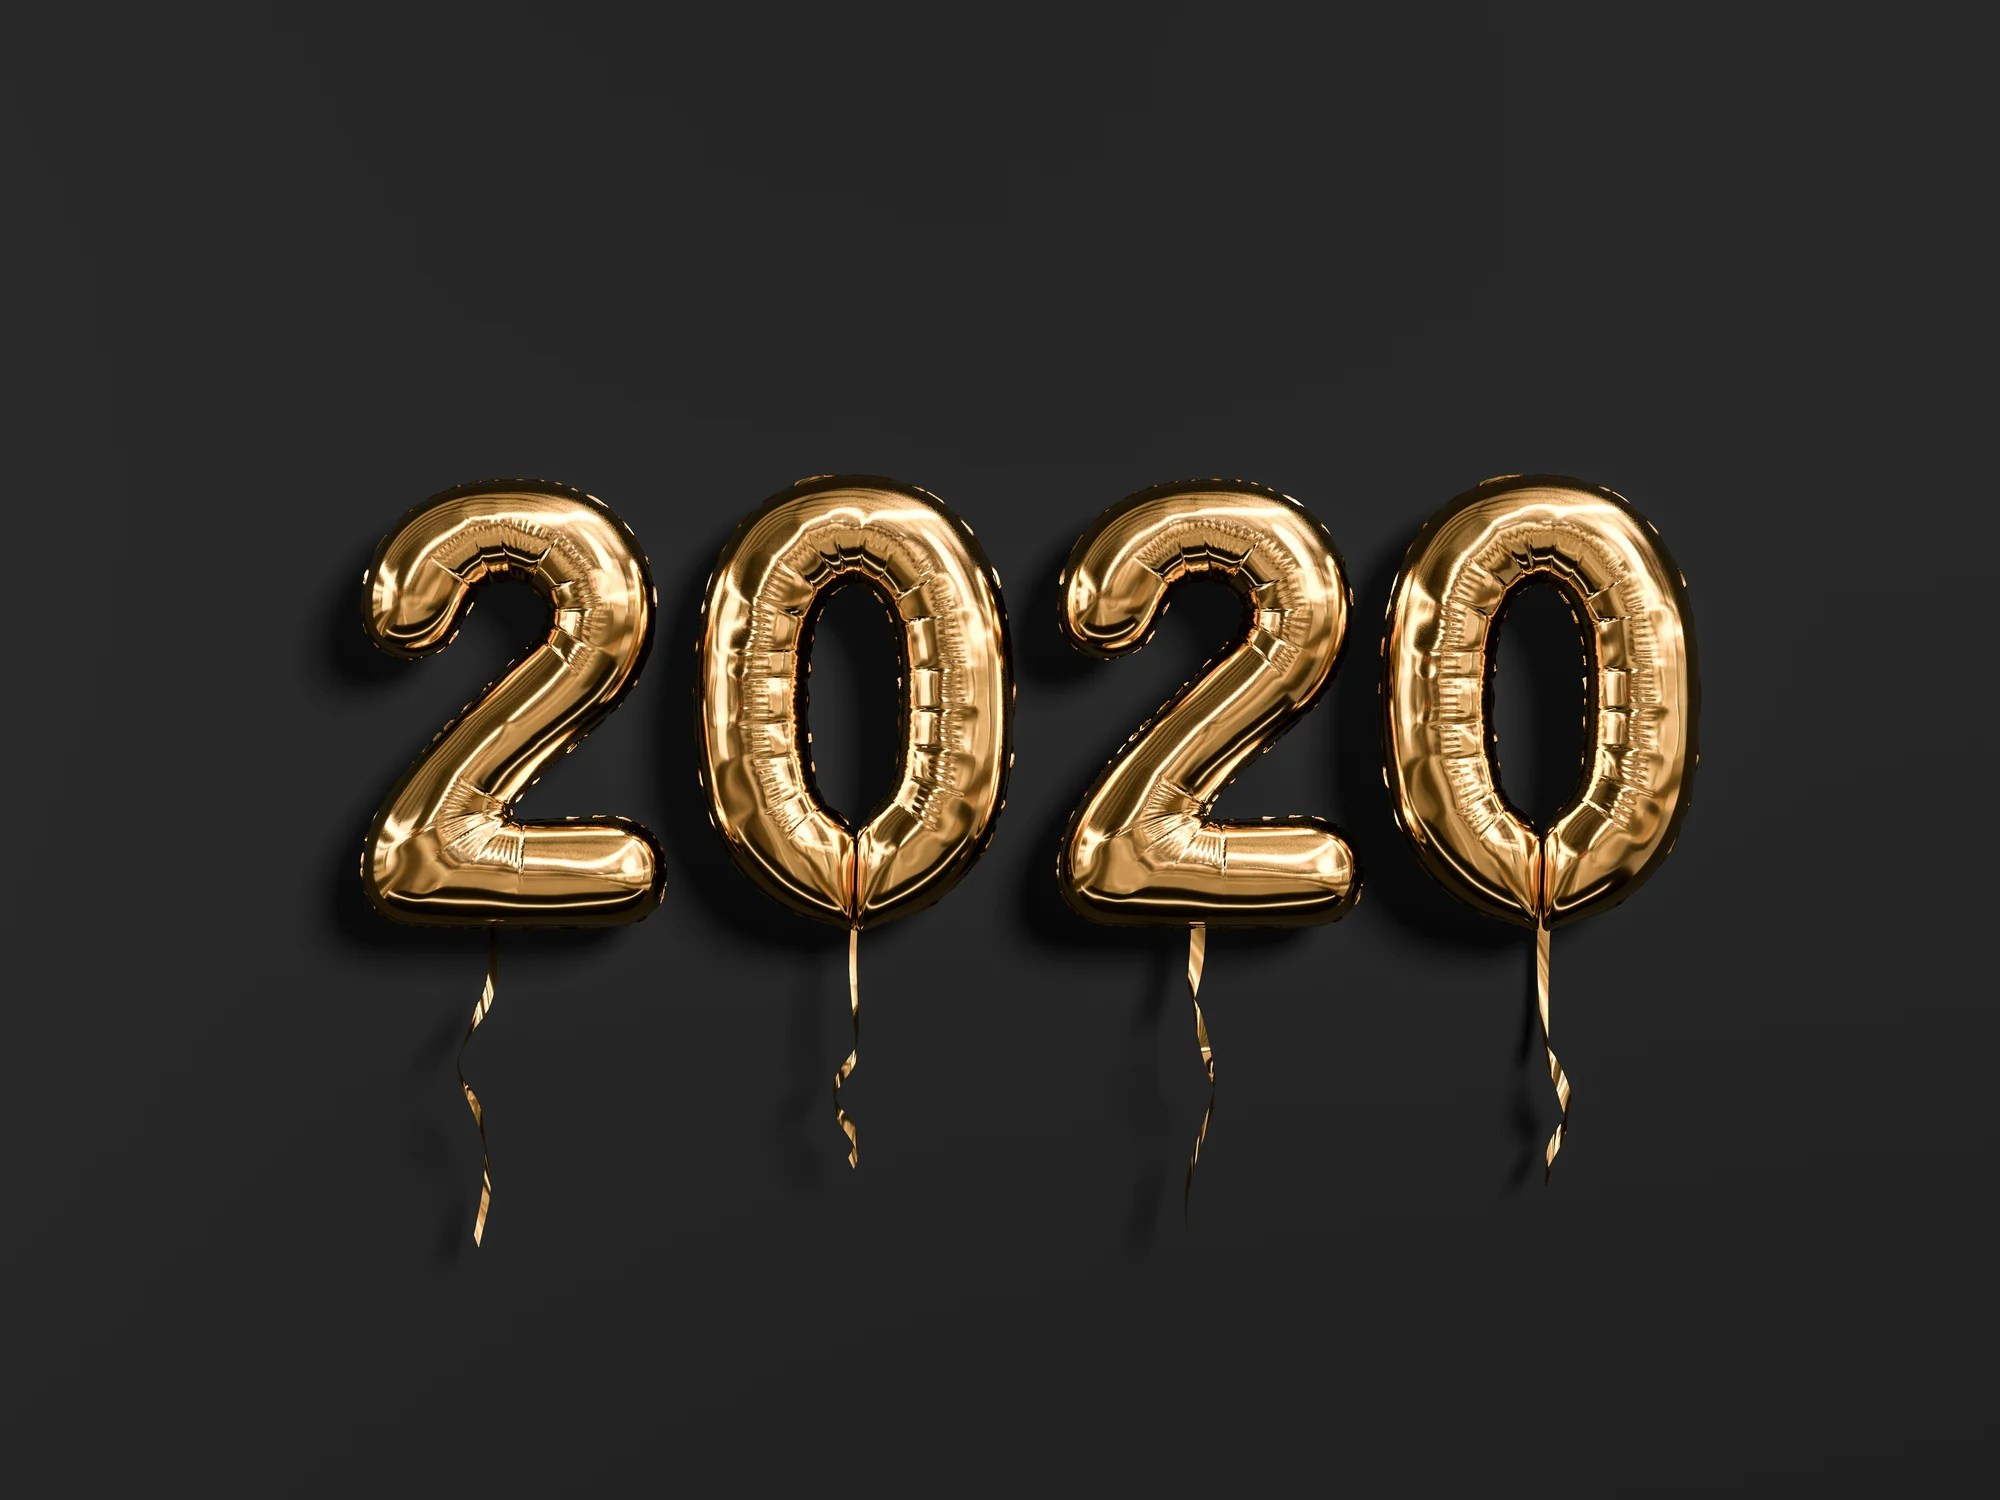 5 Financial Resolutions to Start 2020 Off Right The